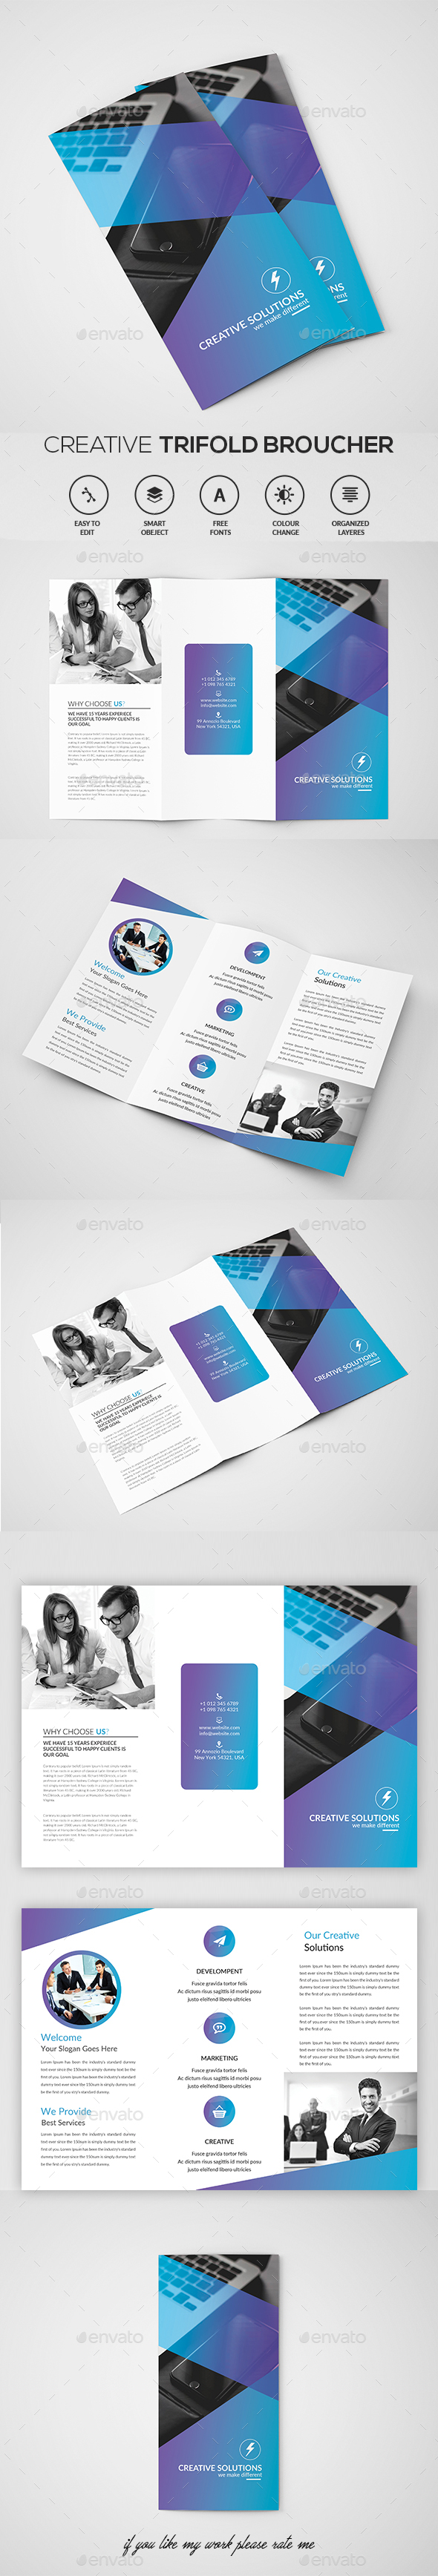 Business Trifold Brochure - Brochures Print Templates